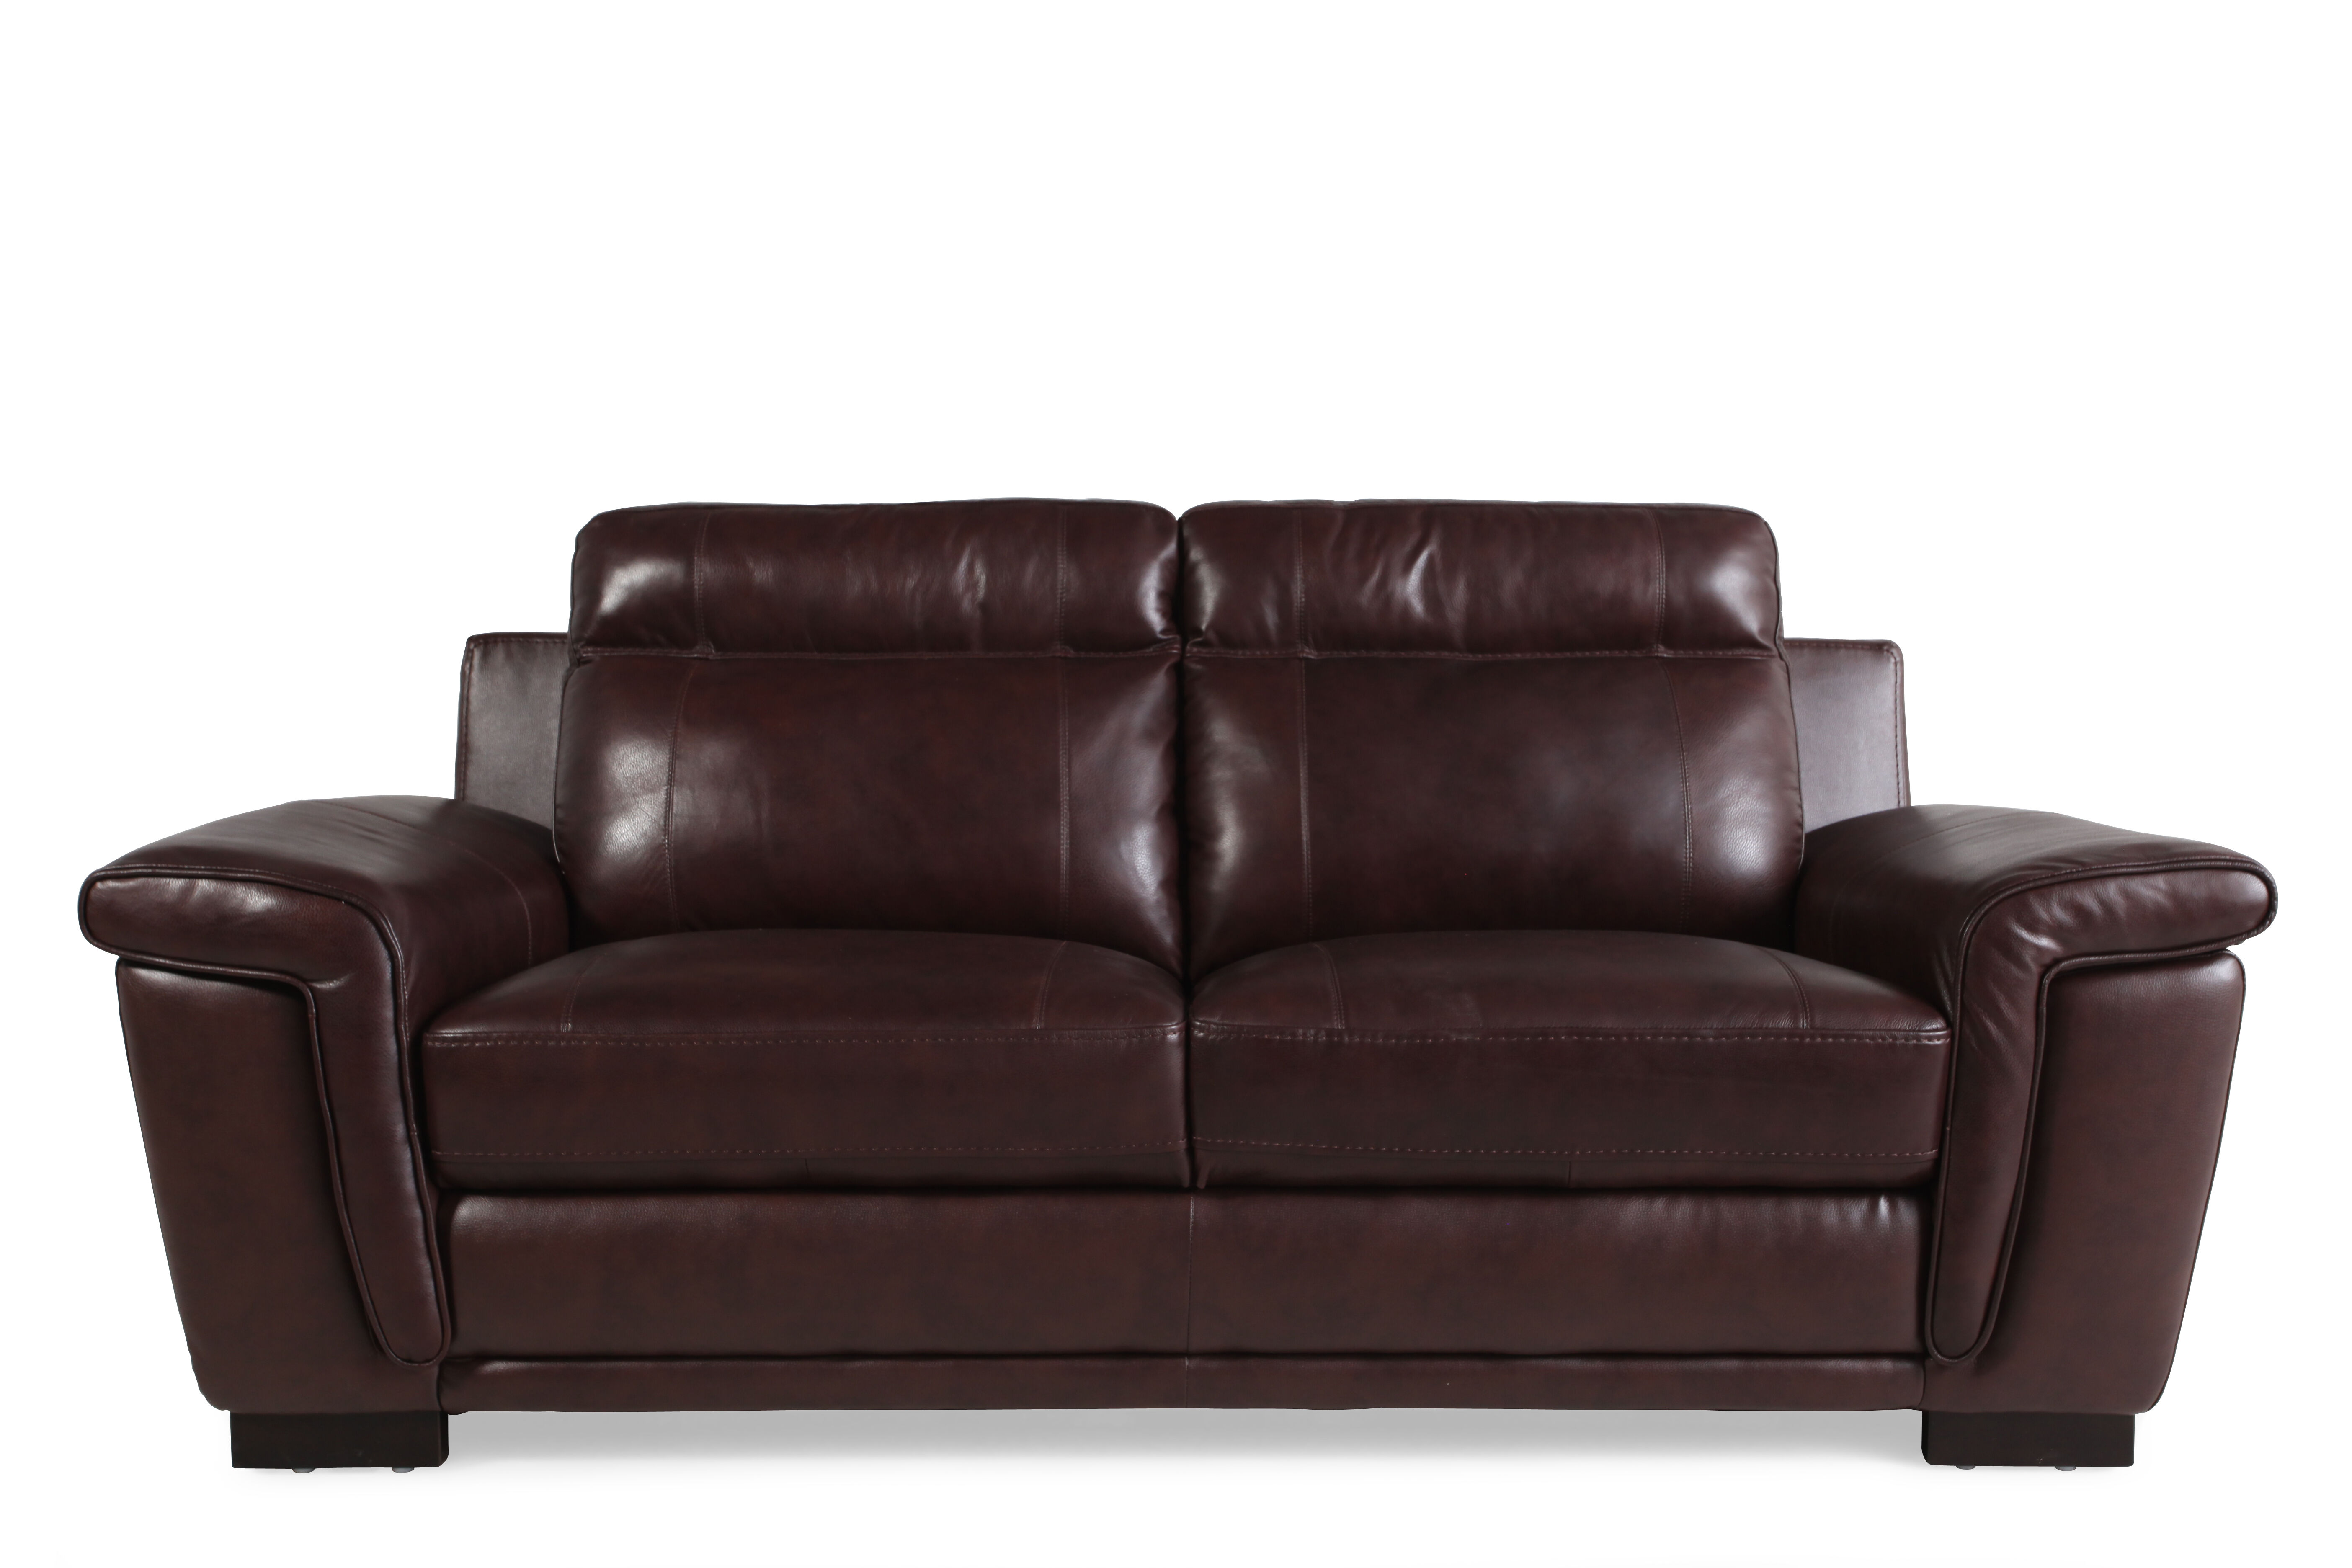 Contemporary 81.5u0026quot; Sofa In Chocolate Brown